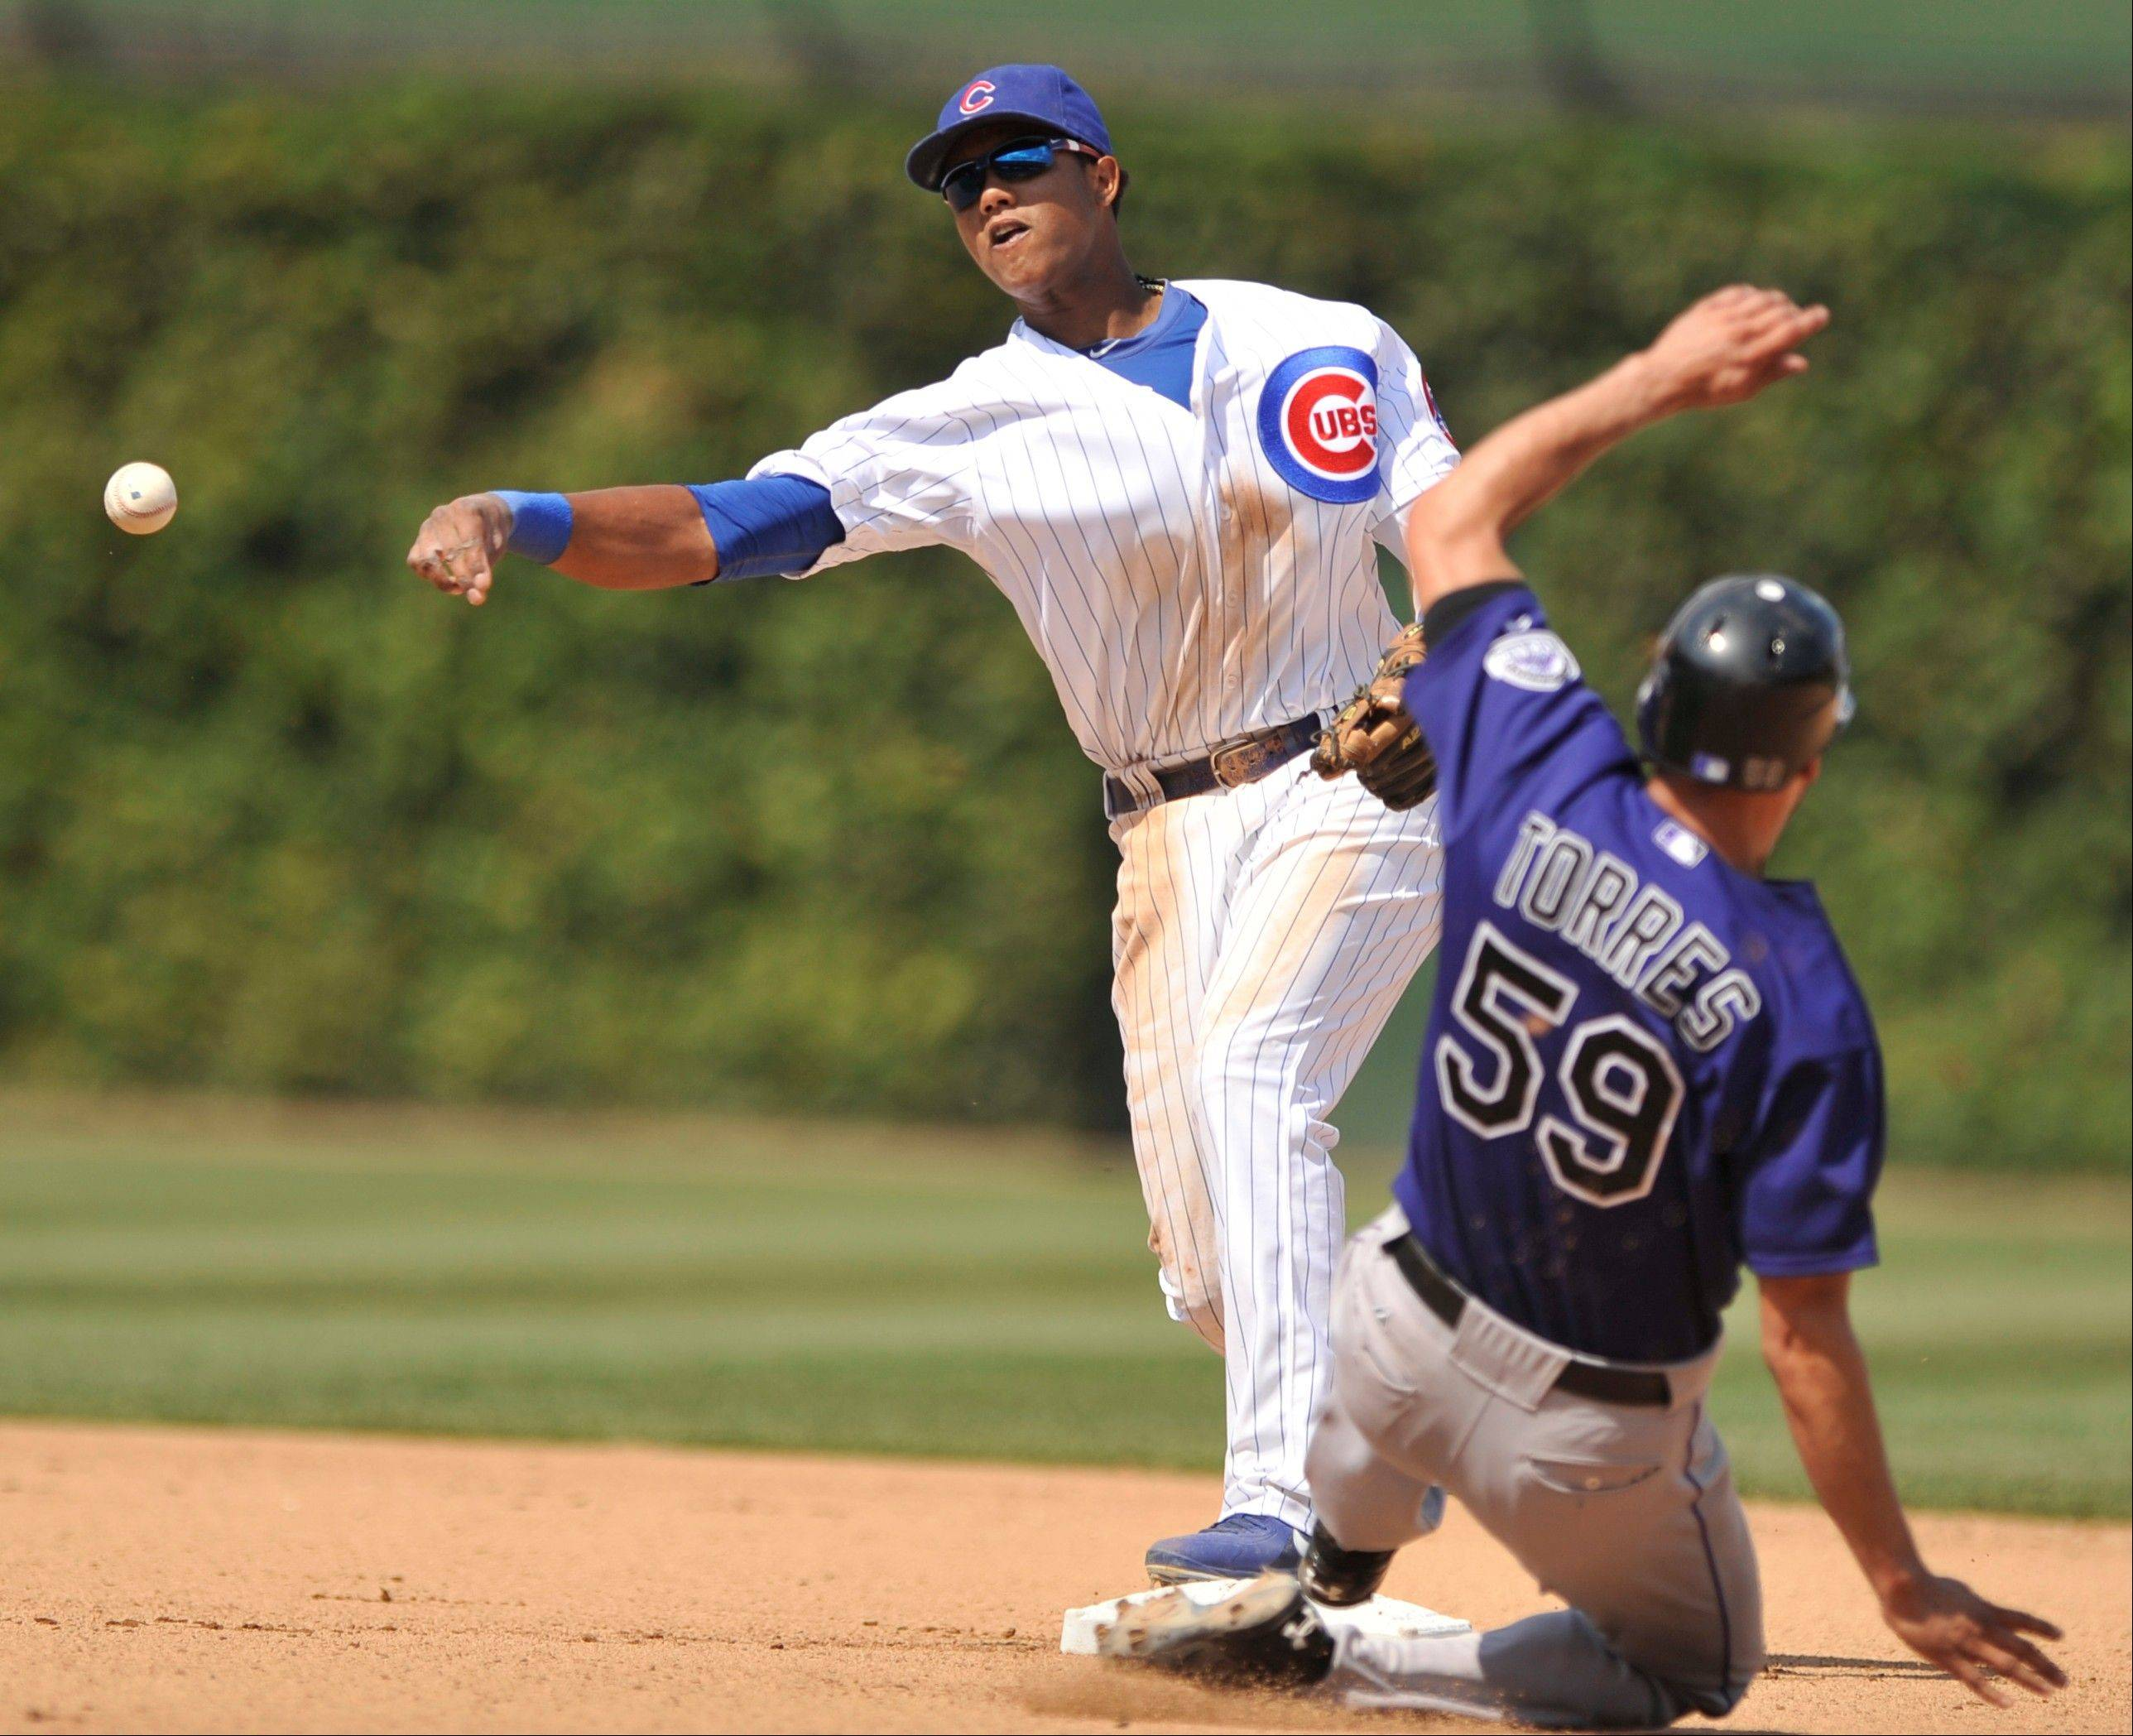 Cubs shortstop Starlin Castro has signed a seven-year deal with the club.